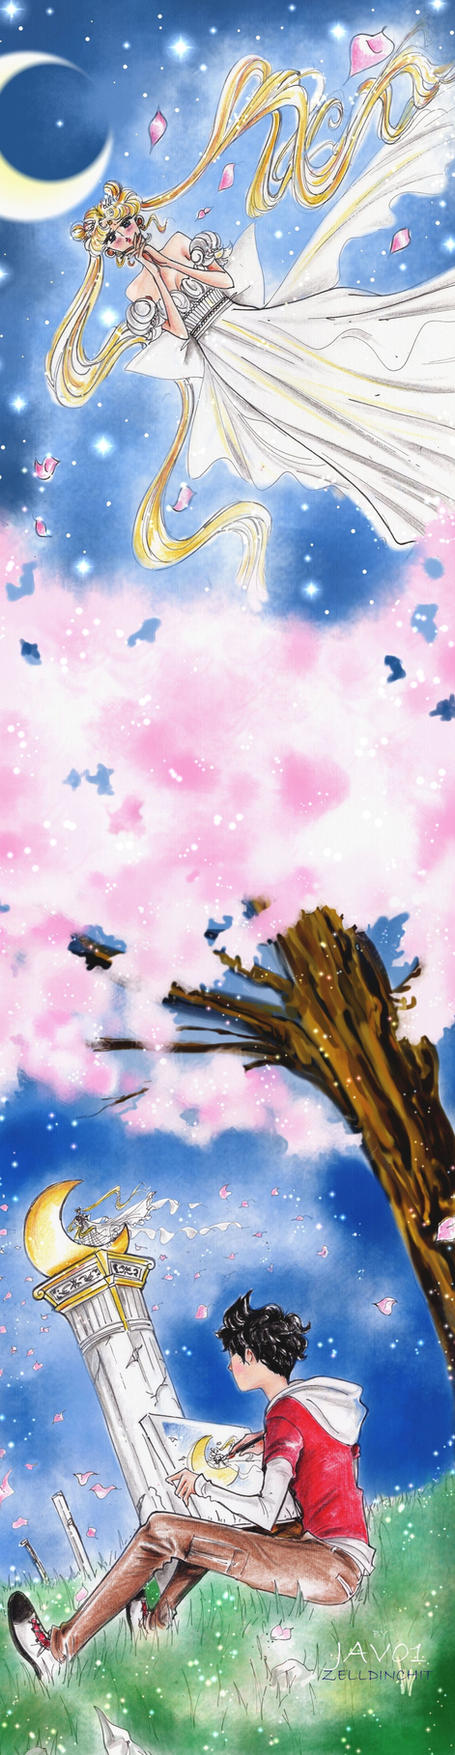 serenity and  javo - the cherry blossom tree by zelldinchit